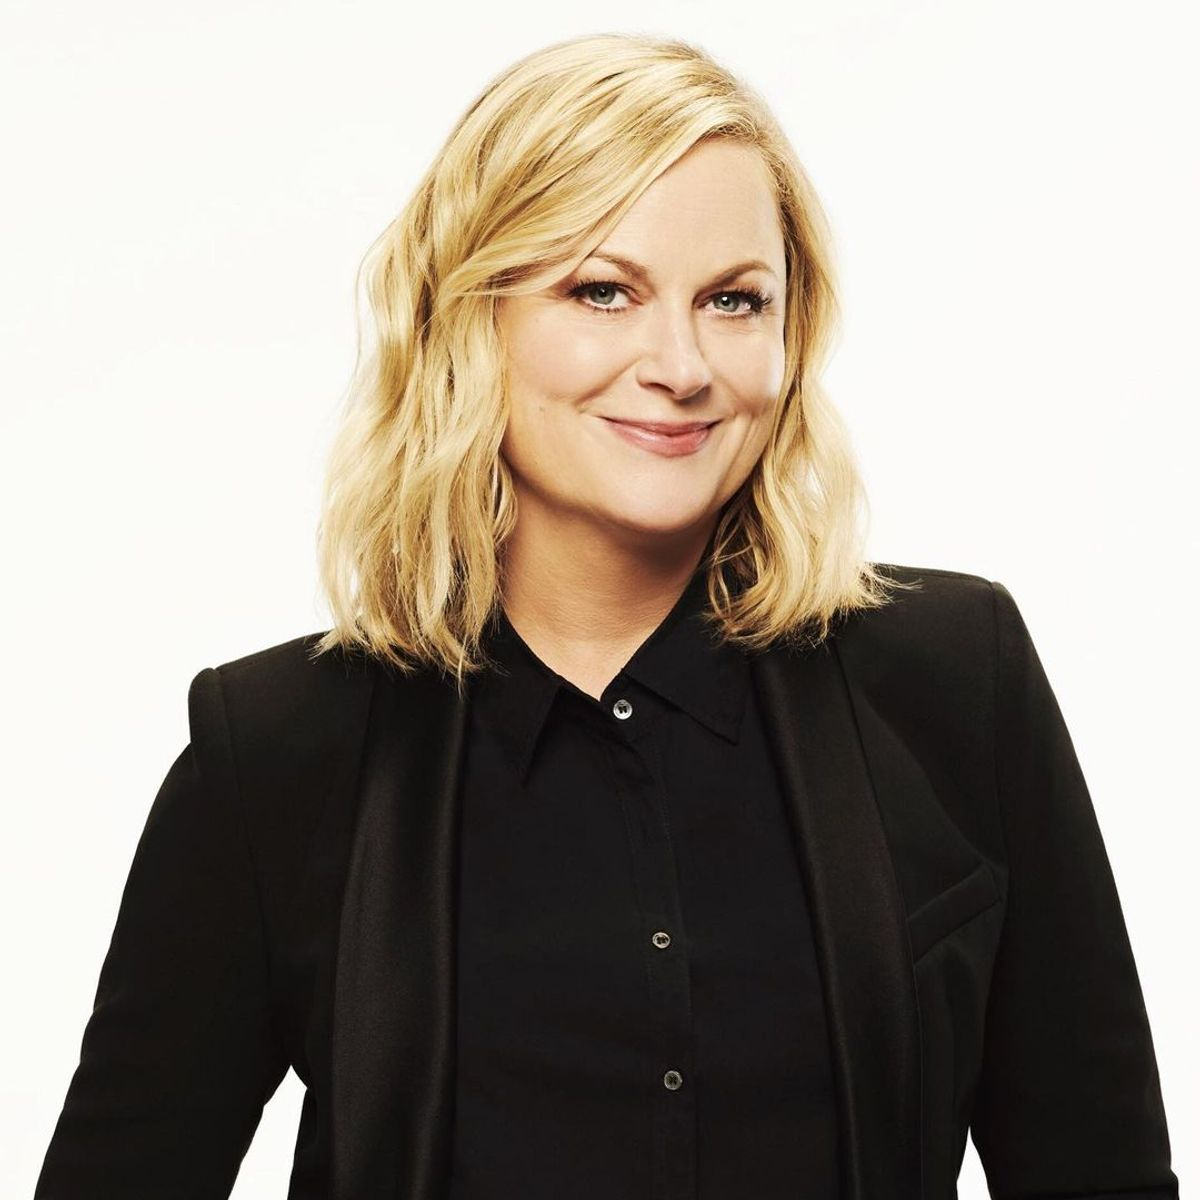 Shes Right You Know... Check out These 36 Quotes from Amy Poehler ...